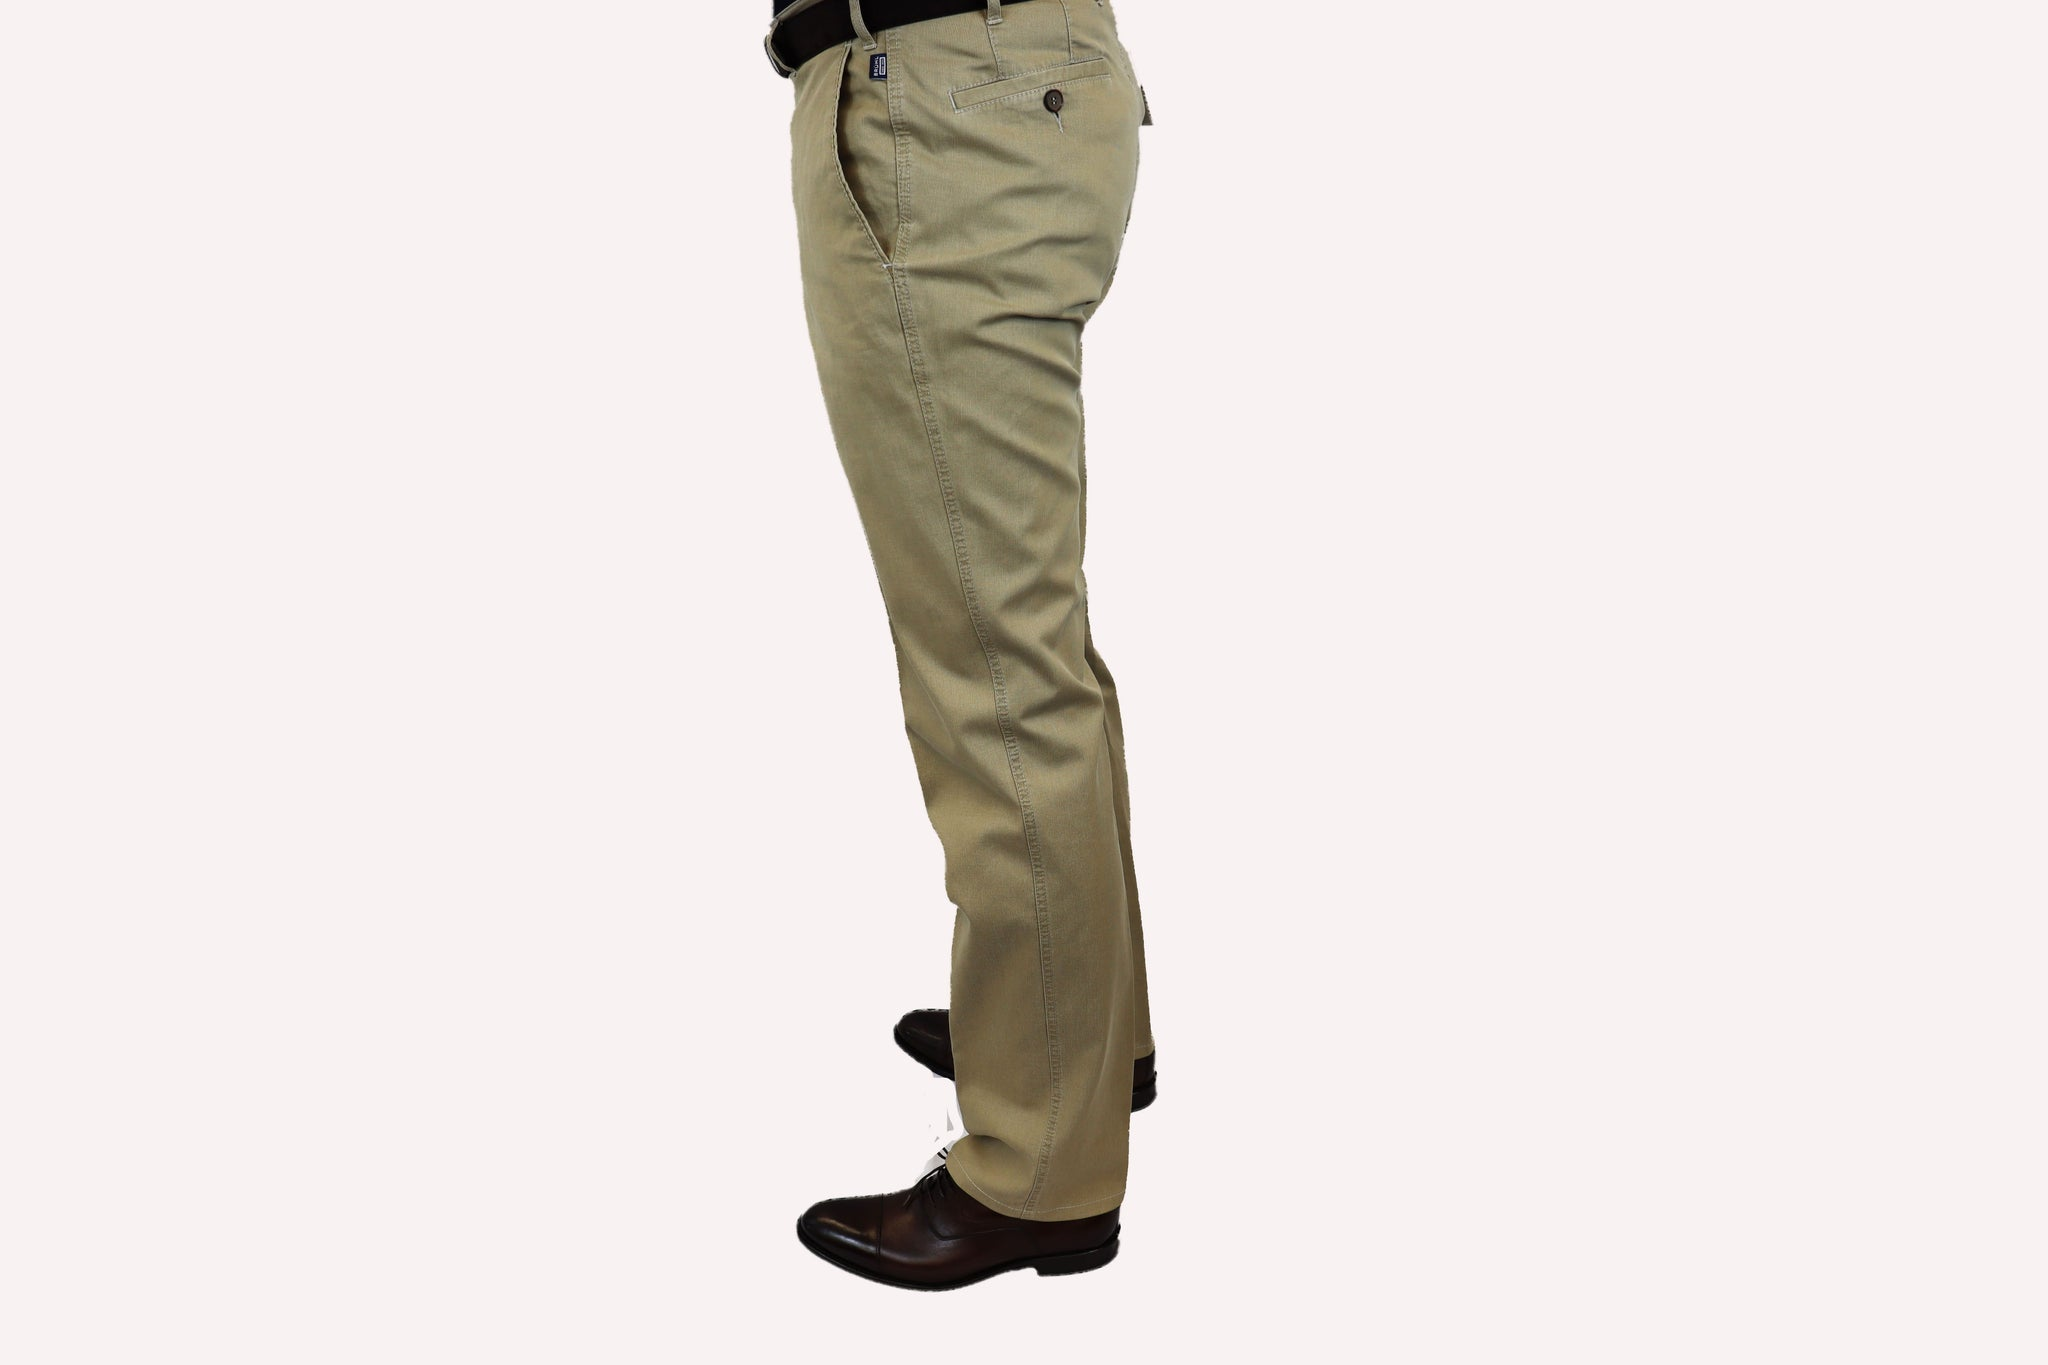 Bruhl Light Tan Soft Rib Chino